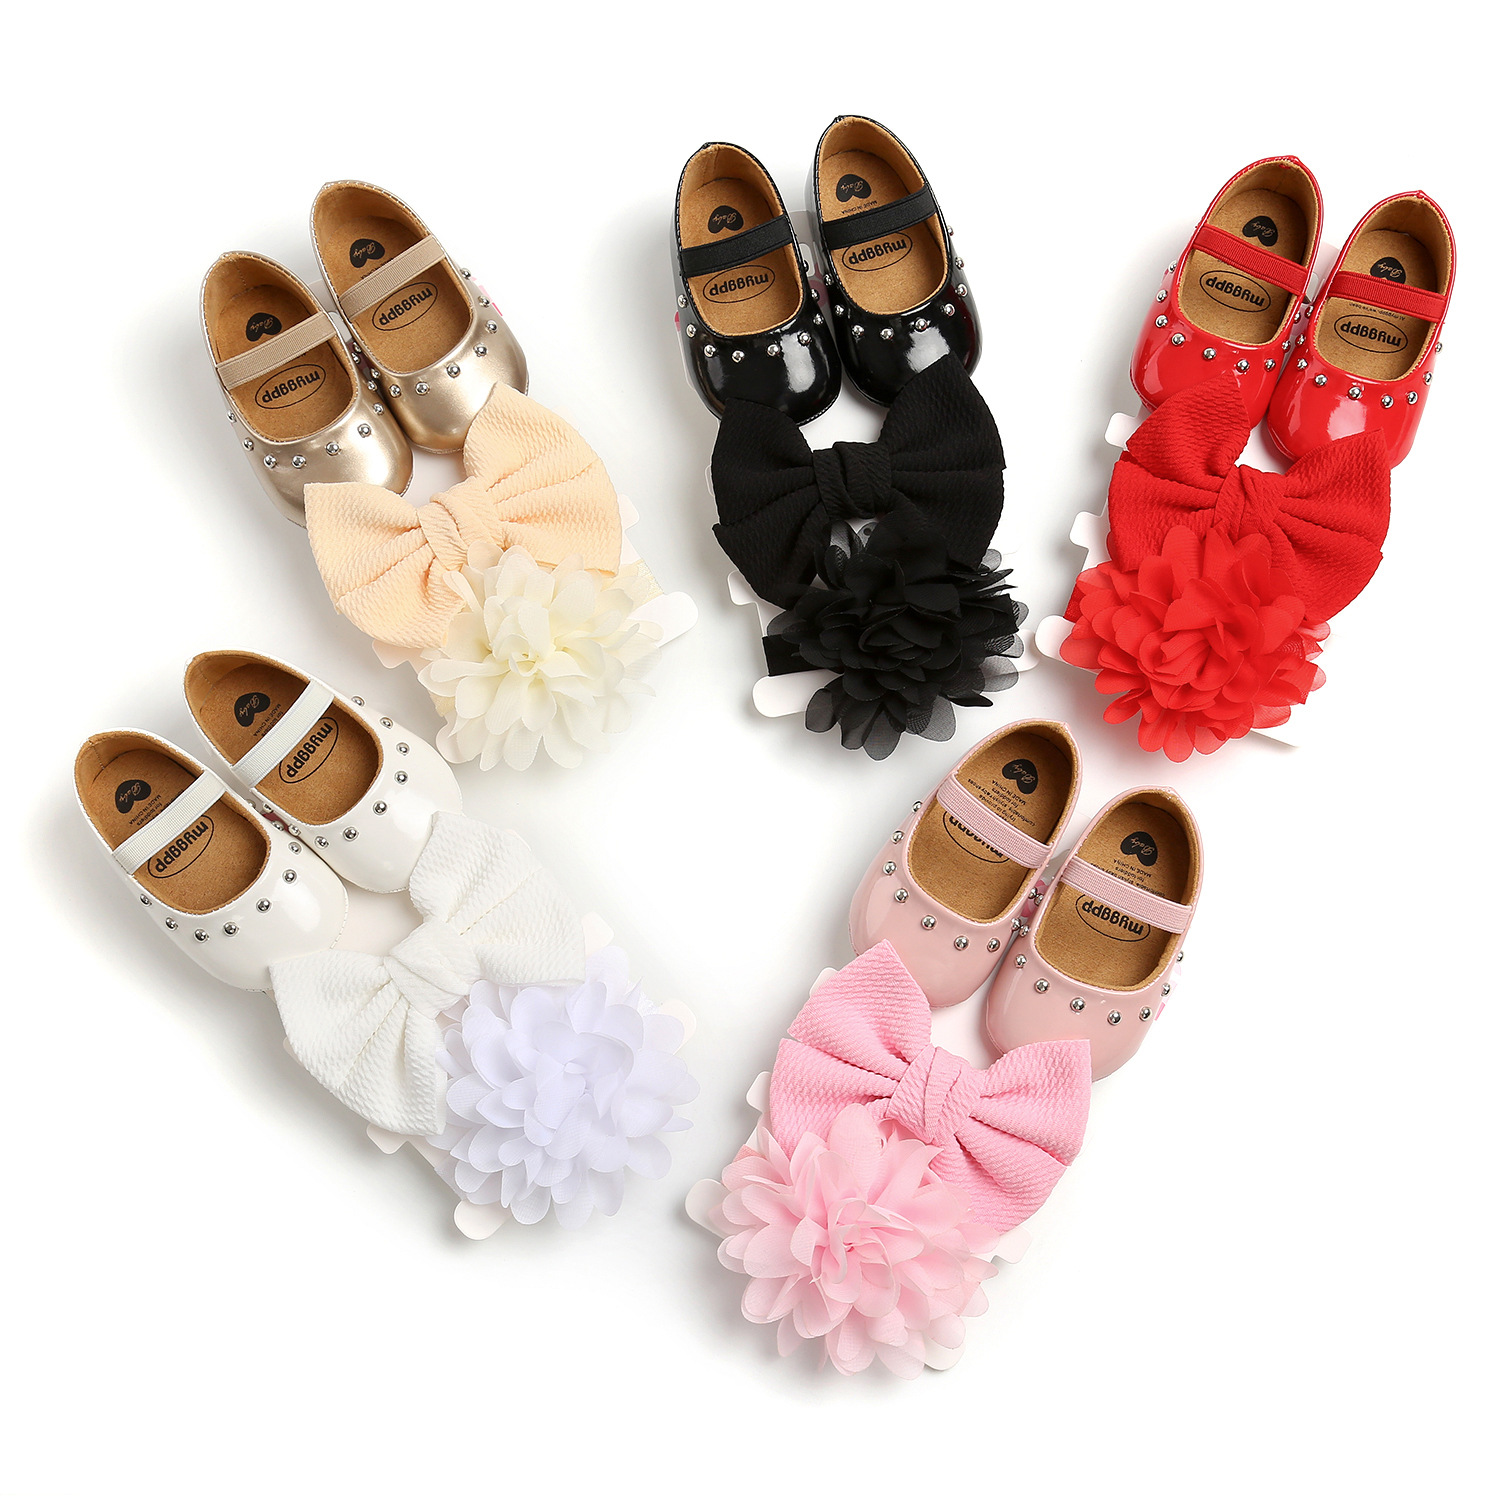 0-1 year old ins baby princess shoes tod...